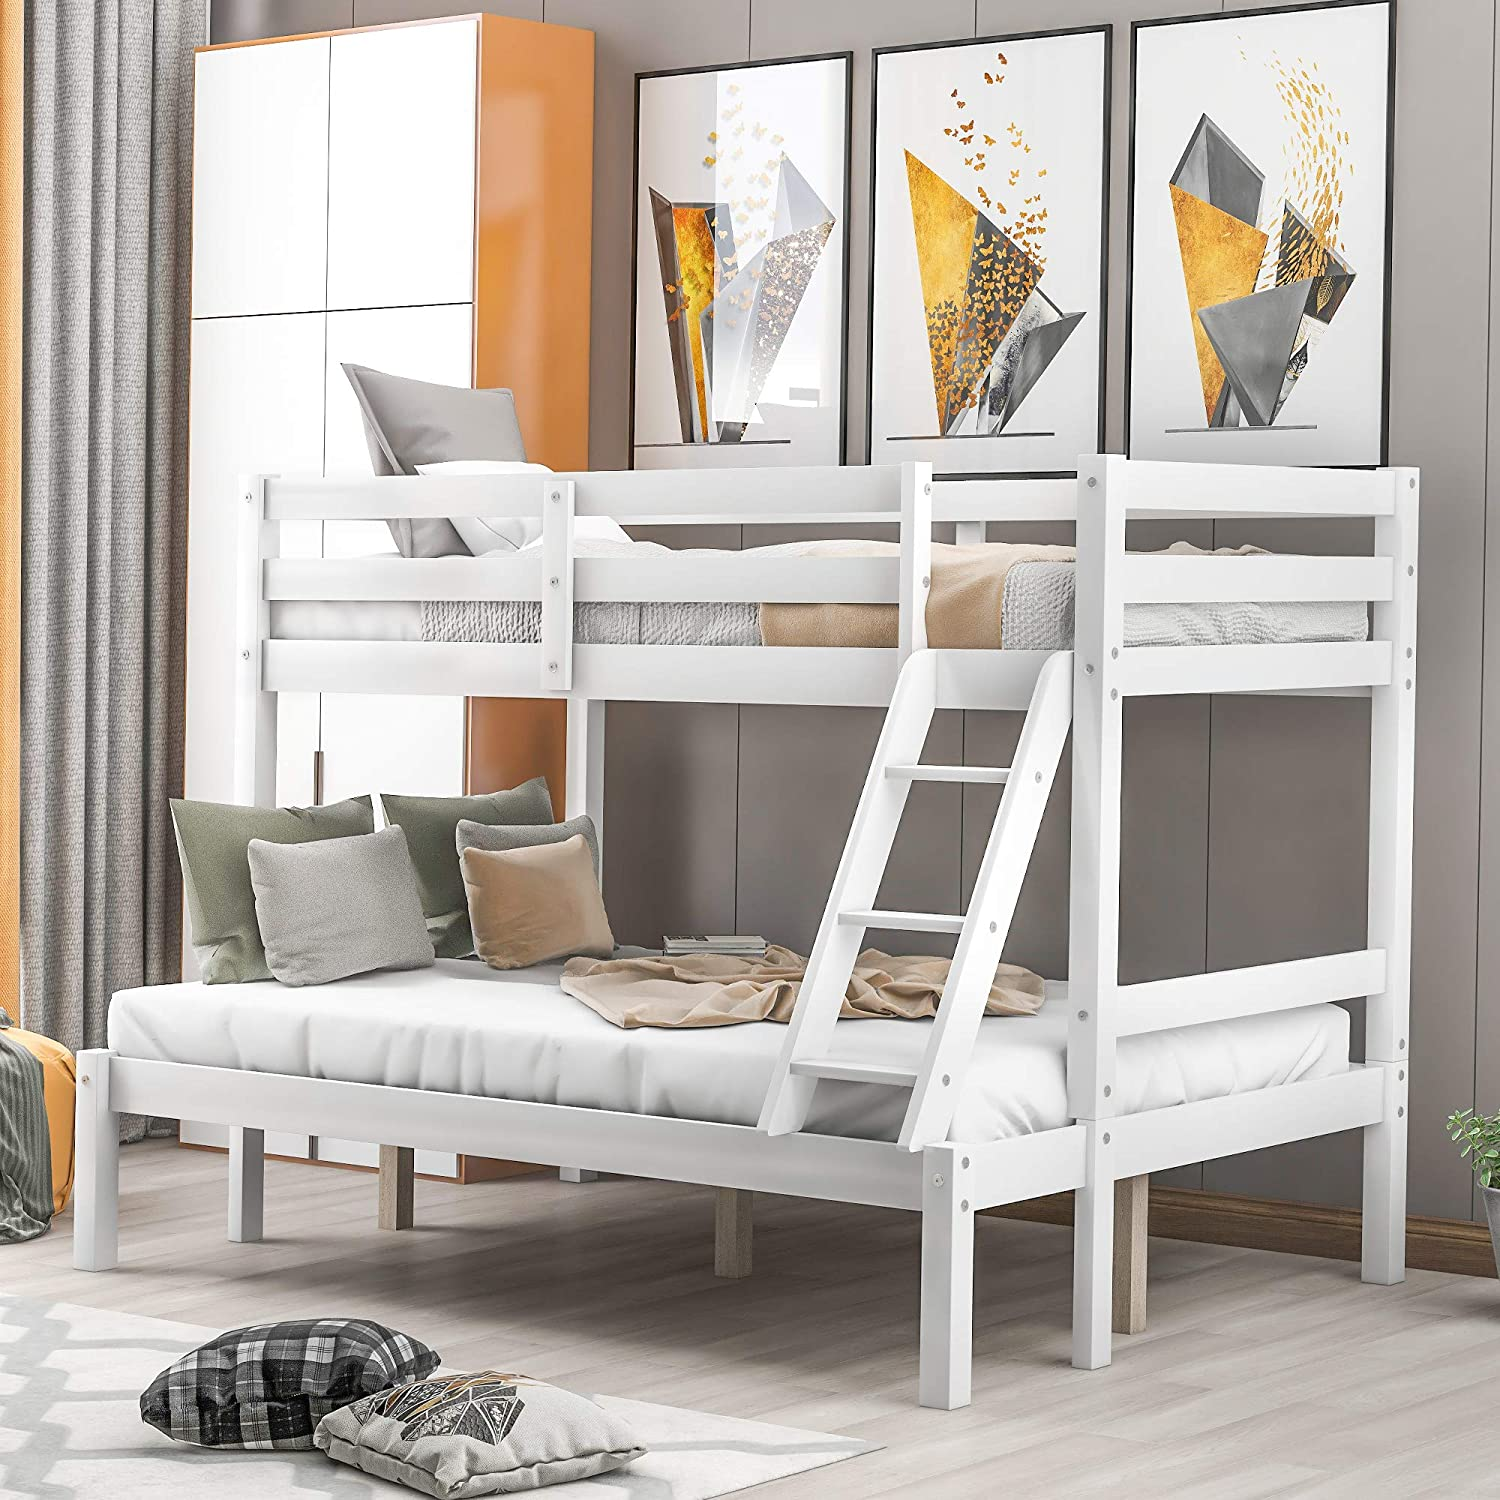 Merax Twin Over Full Bunk Bed with Wood Slat Support/No Box Spring Needed/Easy Assembly Platform, White